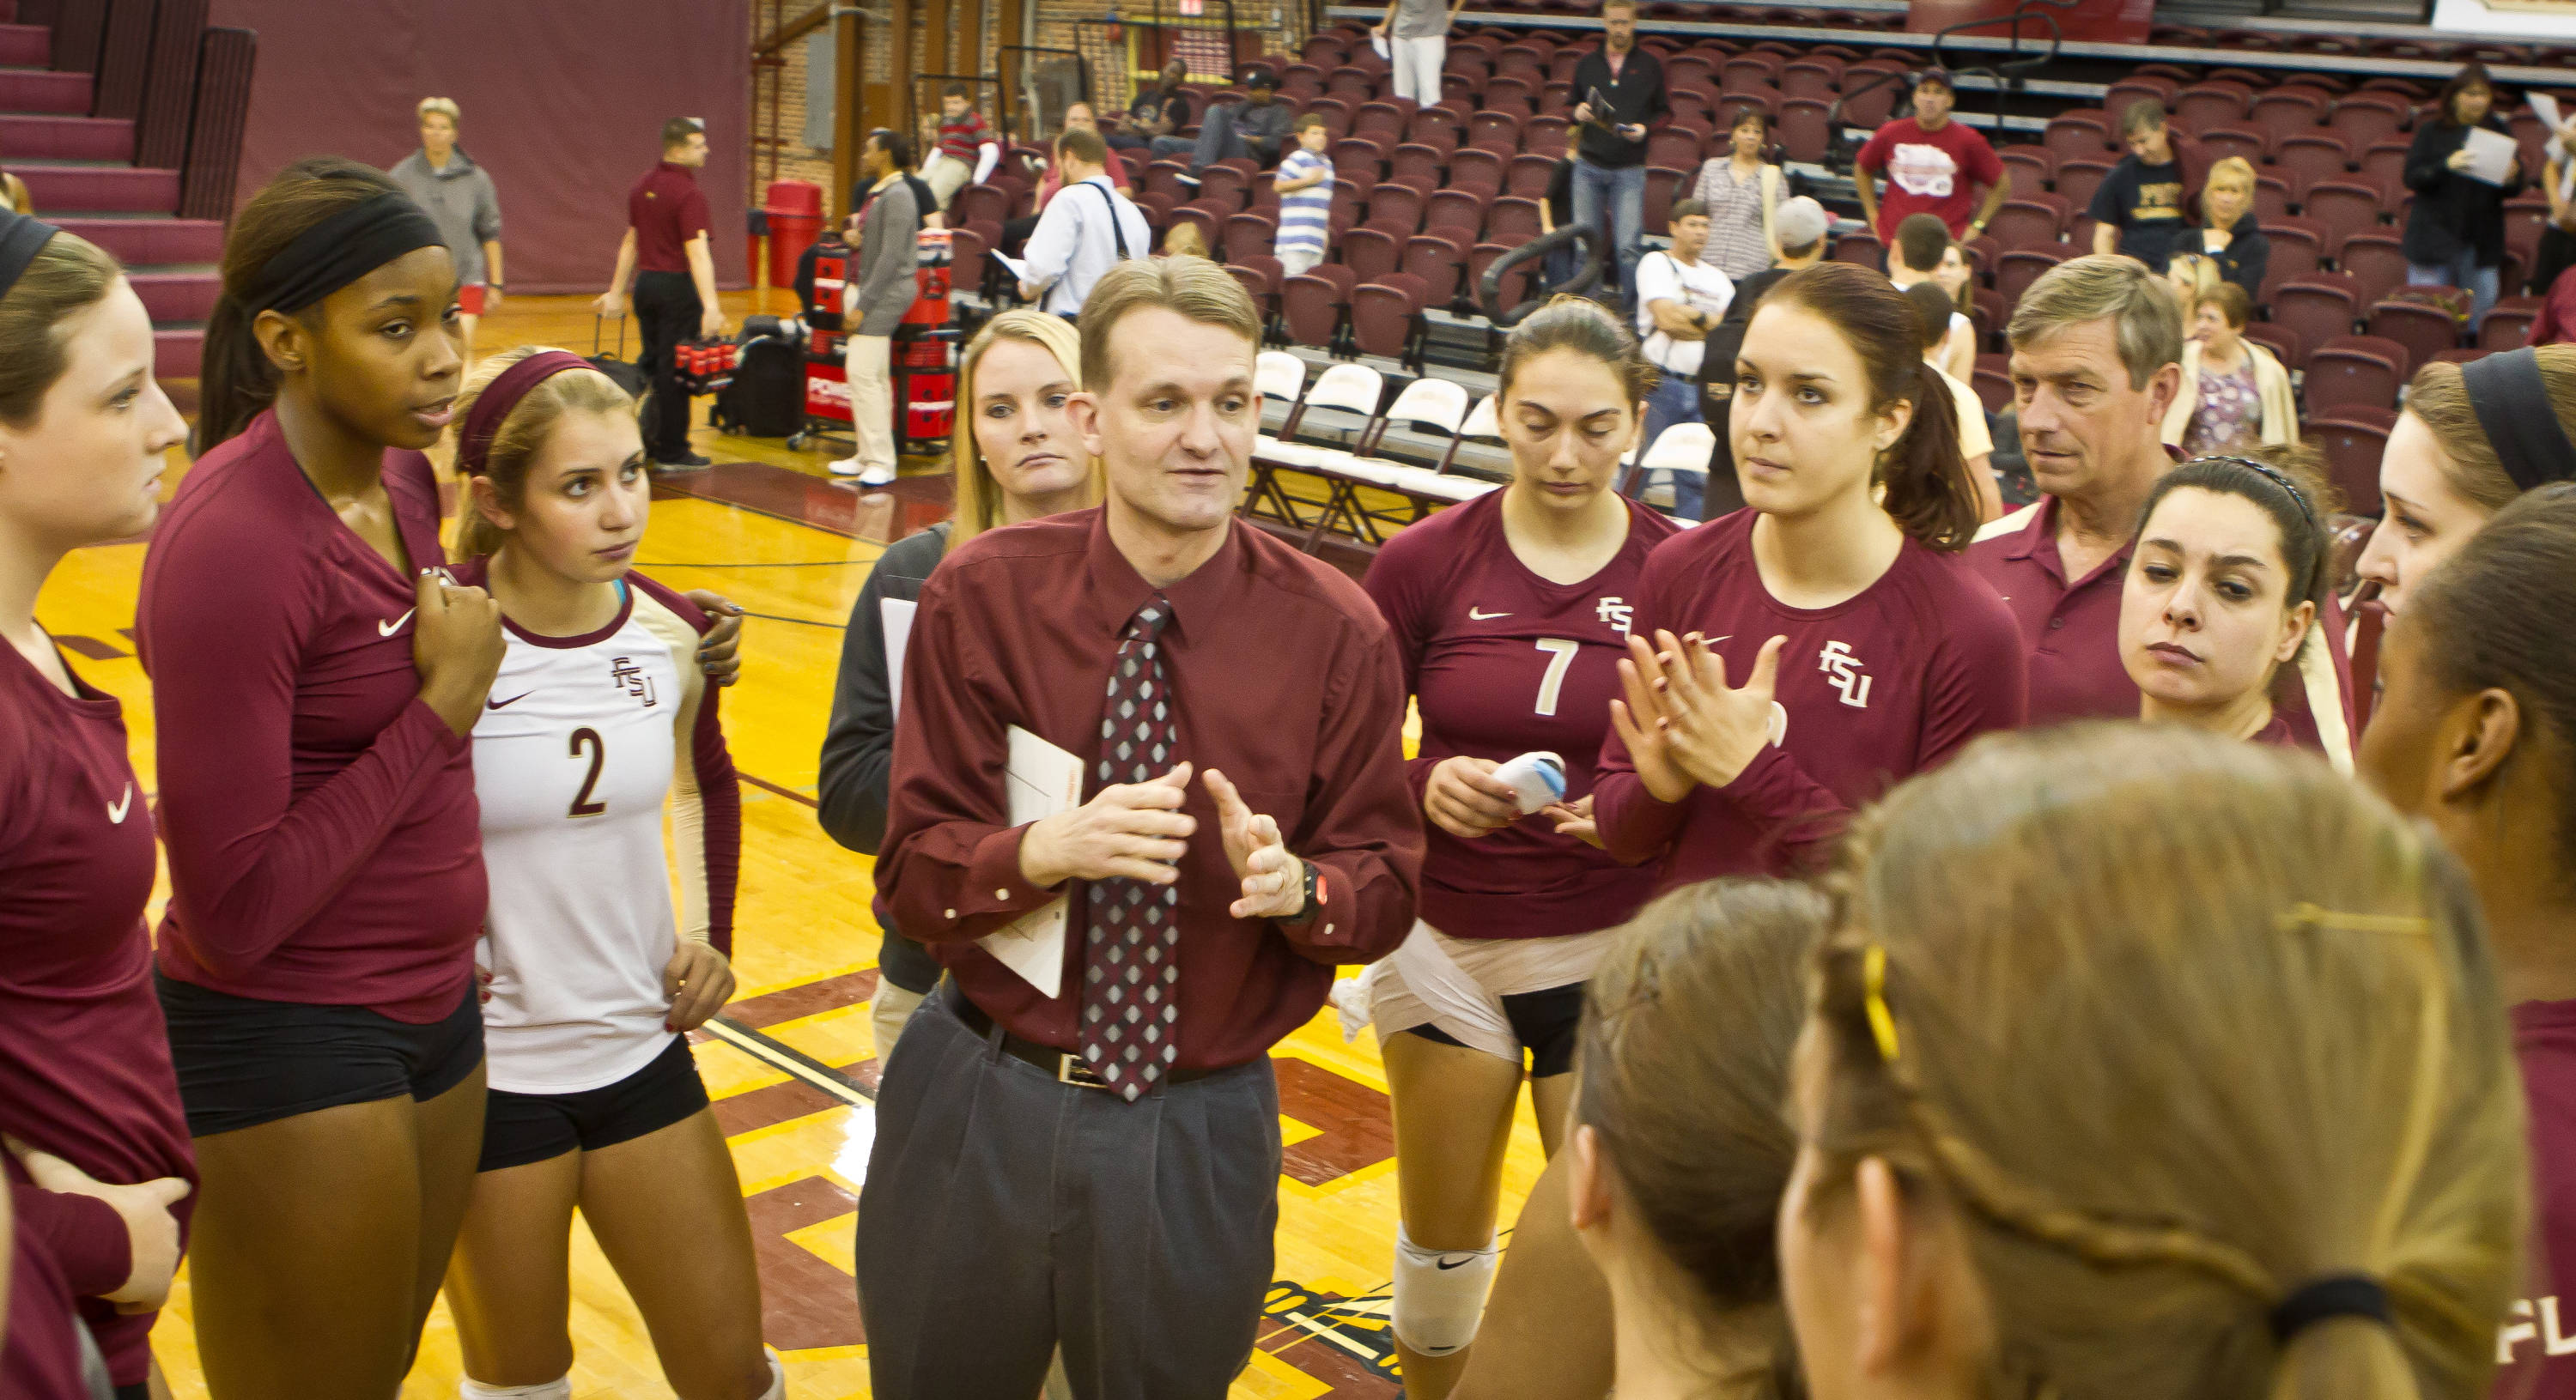 Chris Poole addresses the team after winning match versus Boston College.